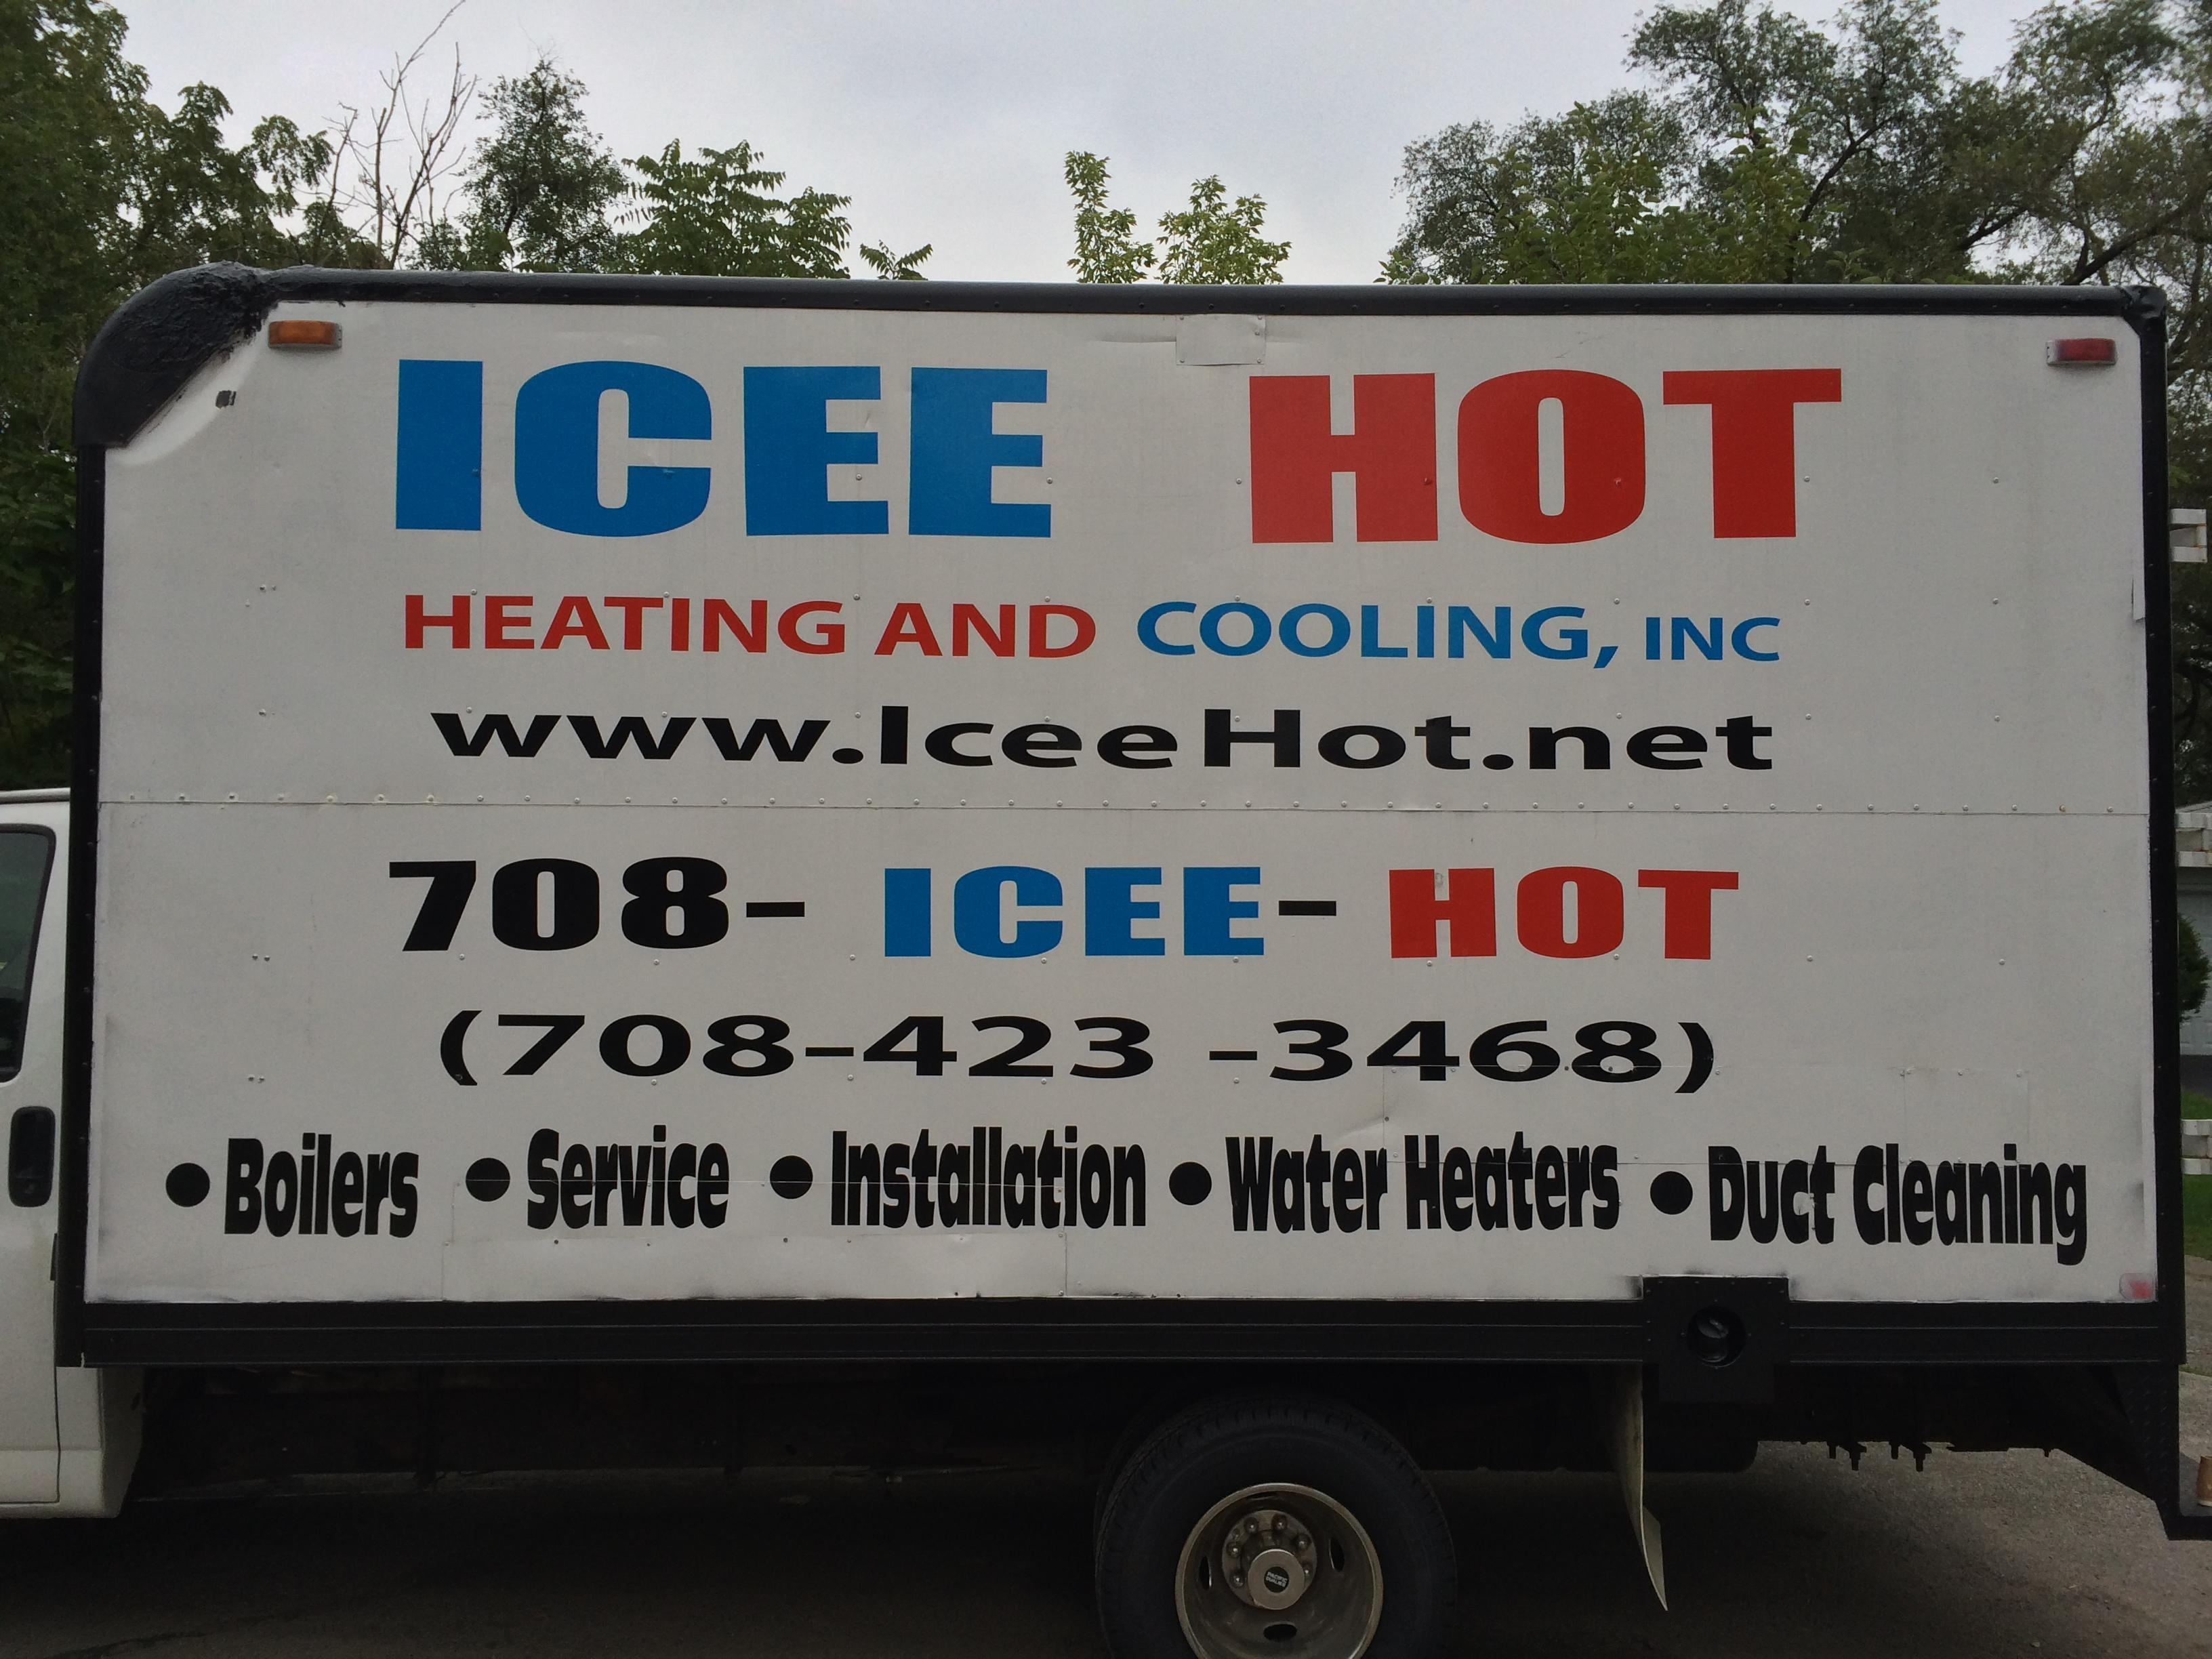 Icee Hot Heating and Cooling, Inc.